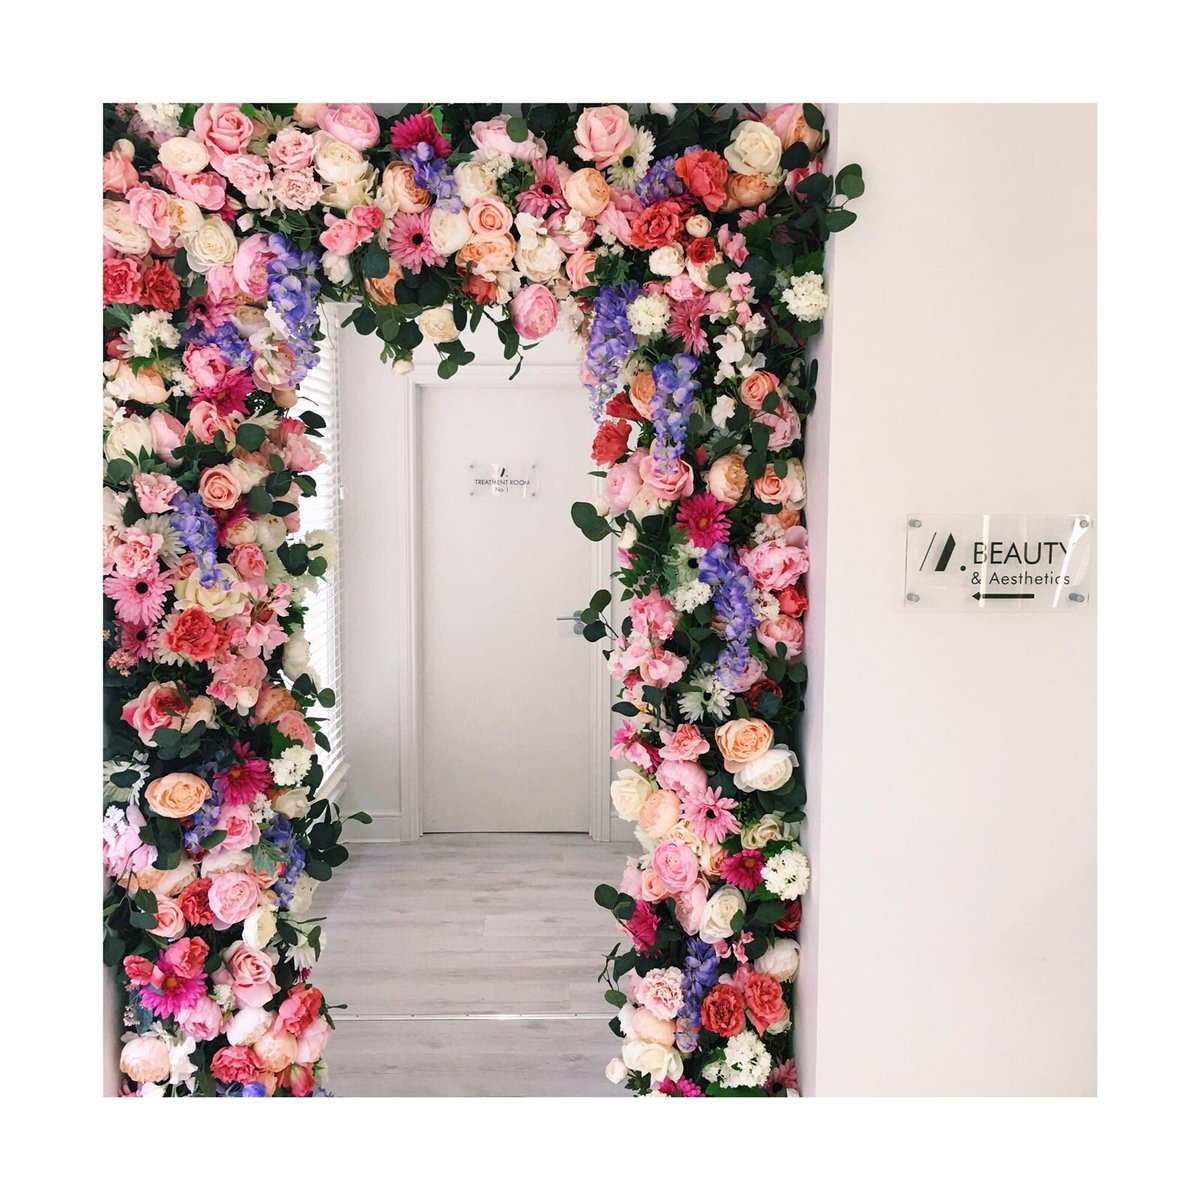 Mark Blake Hair And Beauty On Twitter Floralfriday Have You Spotted Our New Decorative Floral Doorway Leading To The Beauty Rooms In Our Gloucester Salon Markblakehair Markblakebeauty Forthehairyoudeserve Flowerwall Floralarrangement